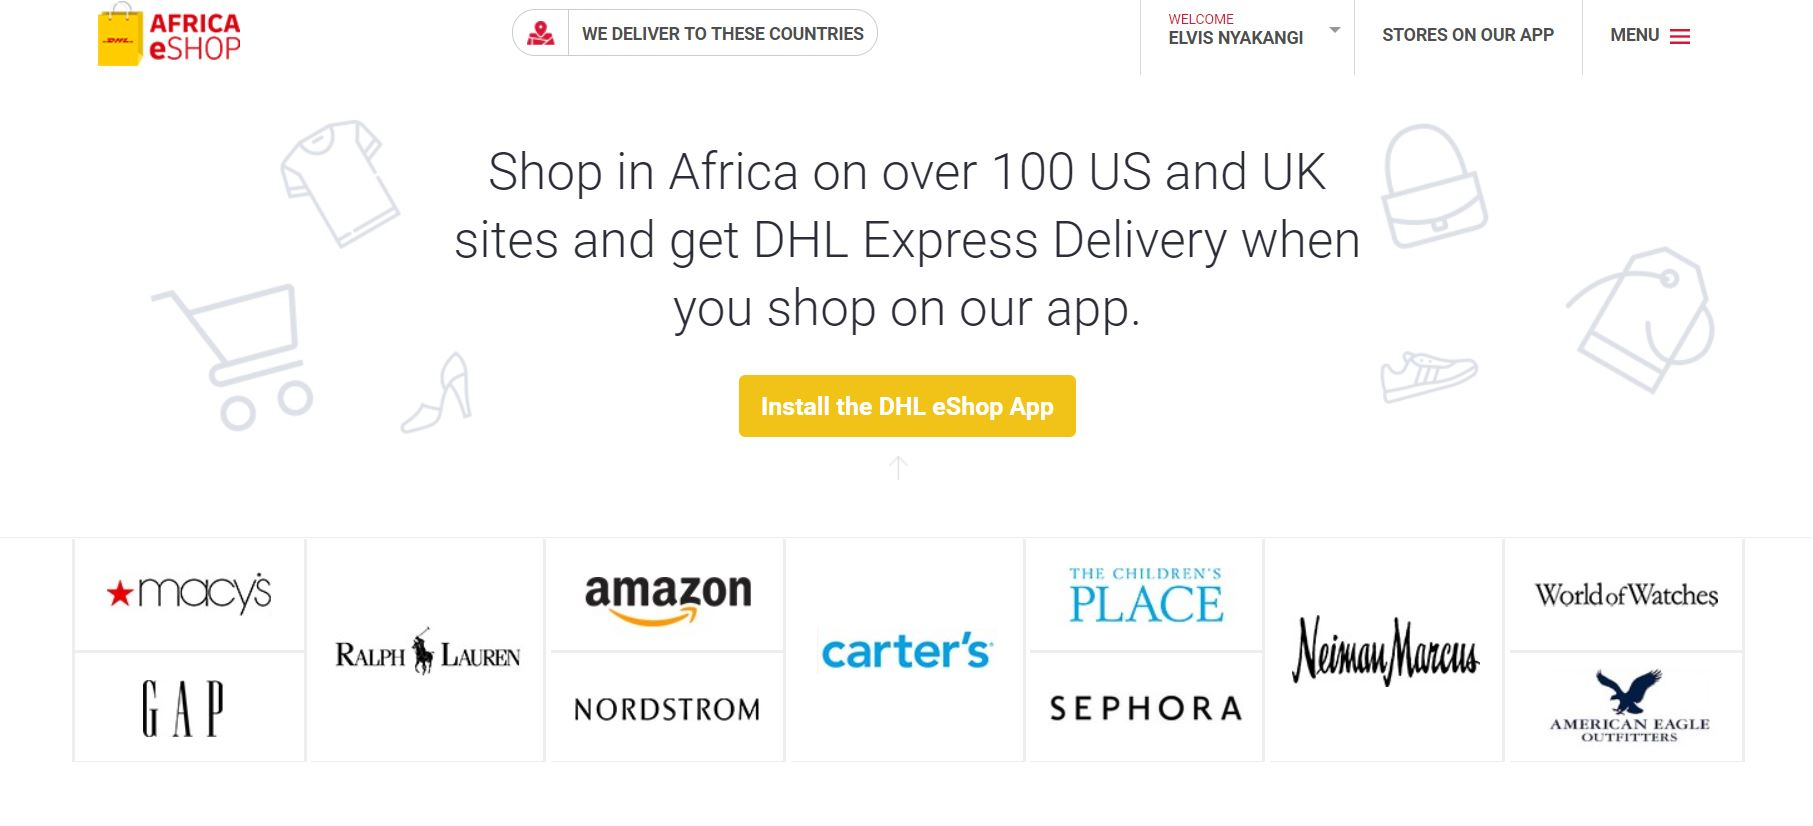 DHL Eshop, a platform of buying products from UK and US top stores like Amazon, Ebay e.t.c